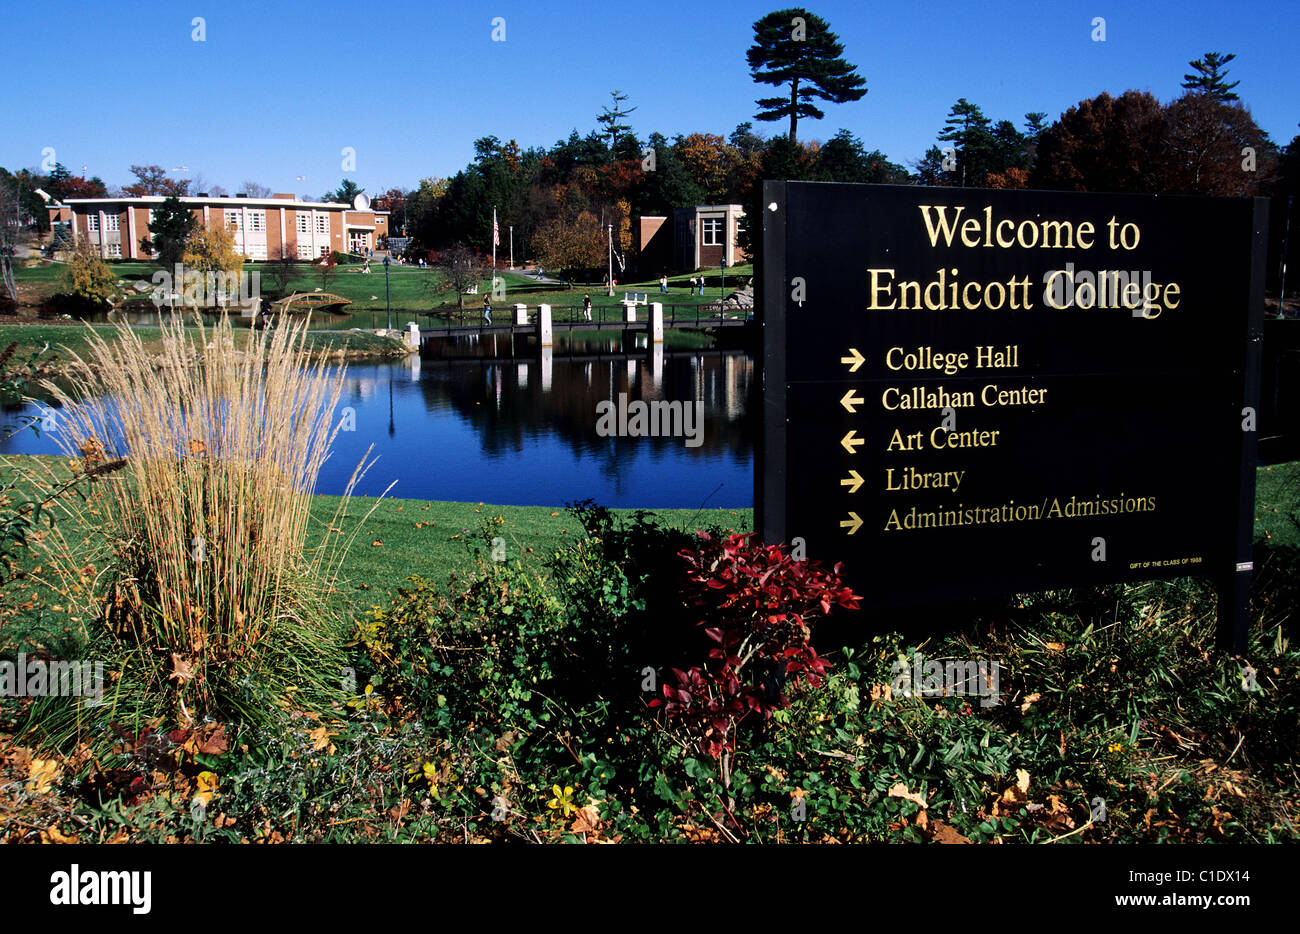 endicott college essay questions Endicott college was founded as endicott junior college in 1939 by eleanor tupper and her husband, george o bierkoe originally a two-year women's college.